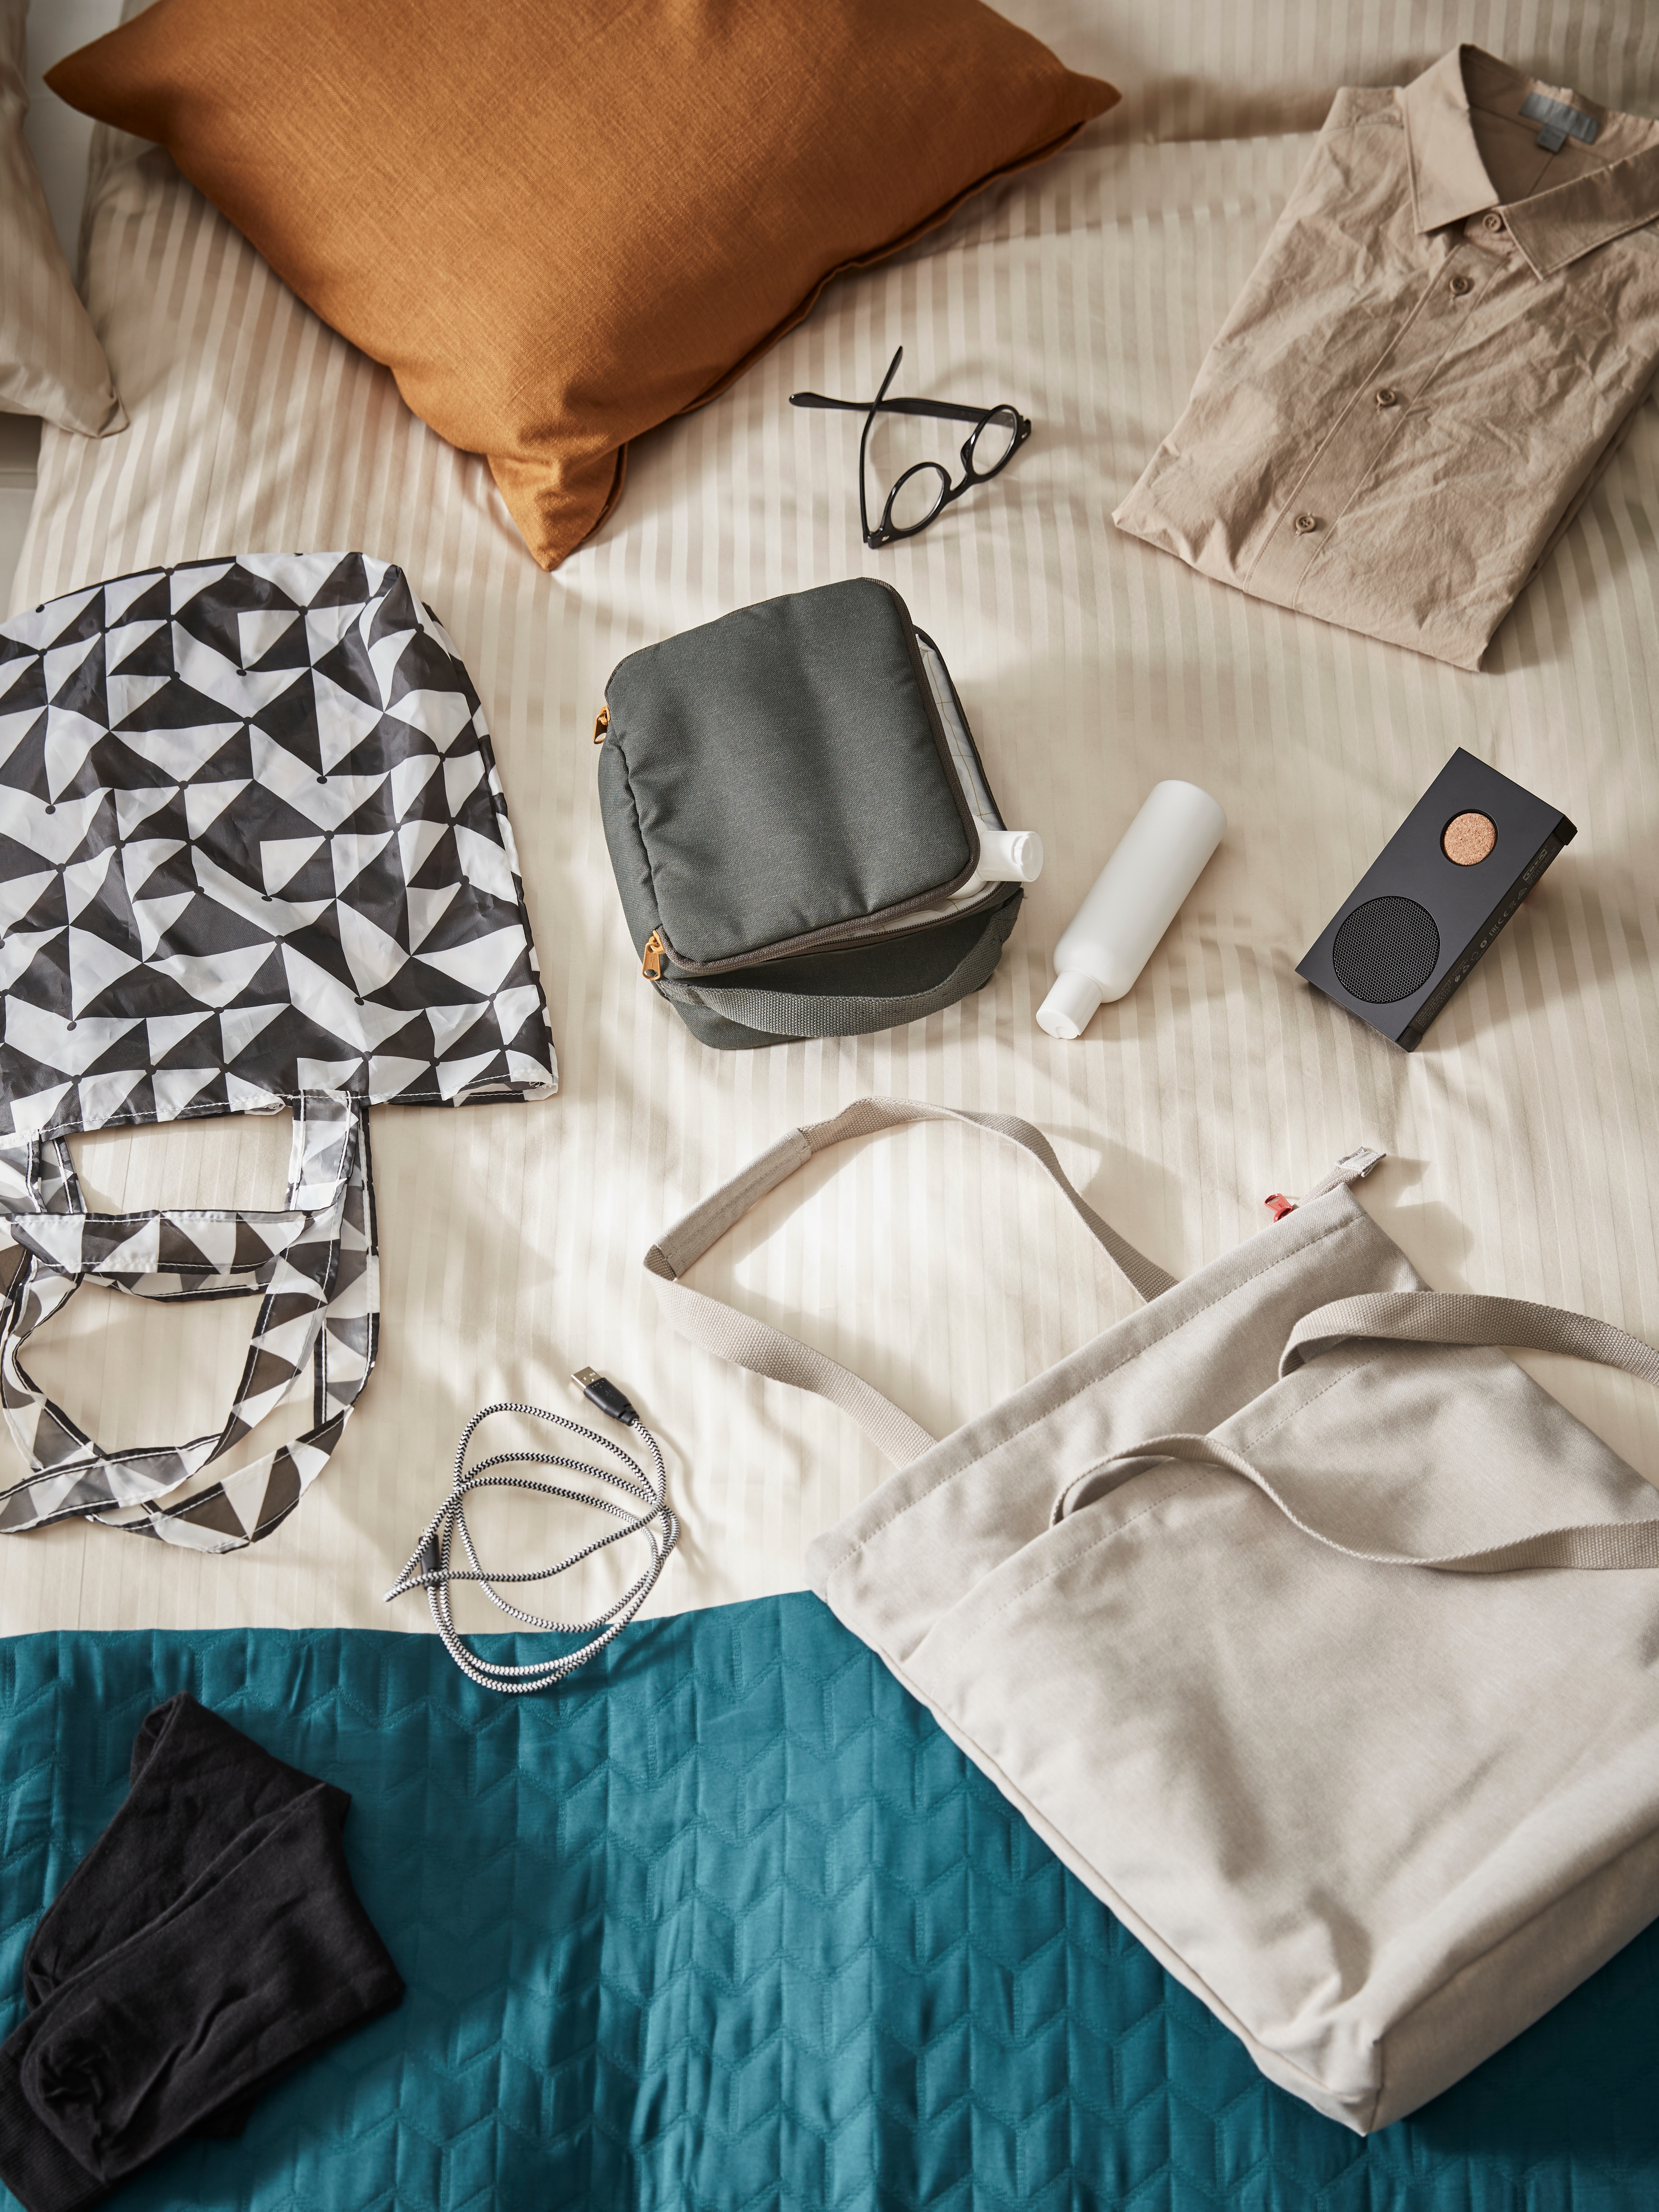 DRÖMSÄCK travel bags lying on a bed next to a tote bag, a USB cable, a pair of glasses, a shirt and a portable speaker.